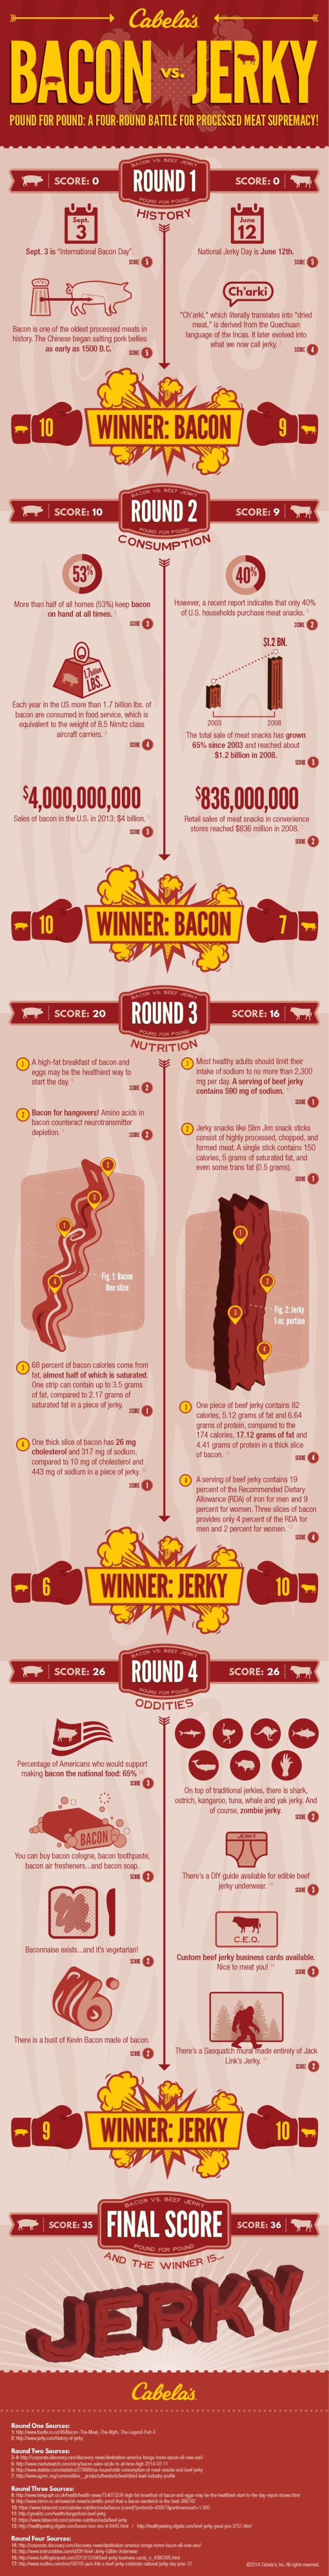 Cabelas-Bacon_vs_Jerky-Infographic-with logo